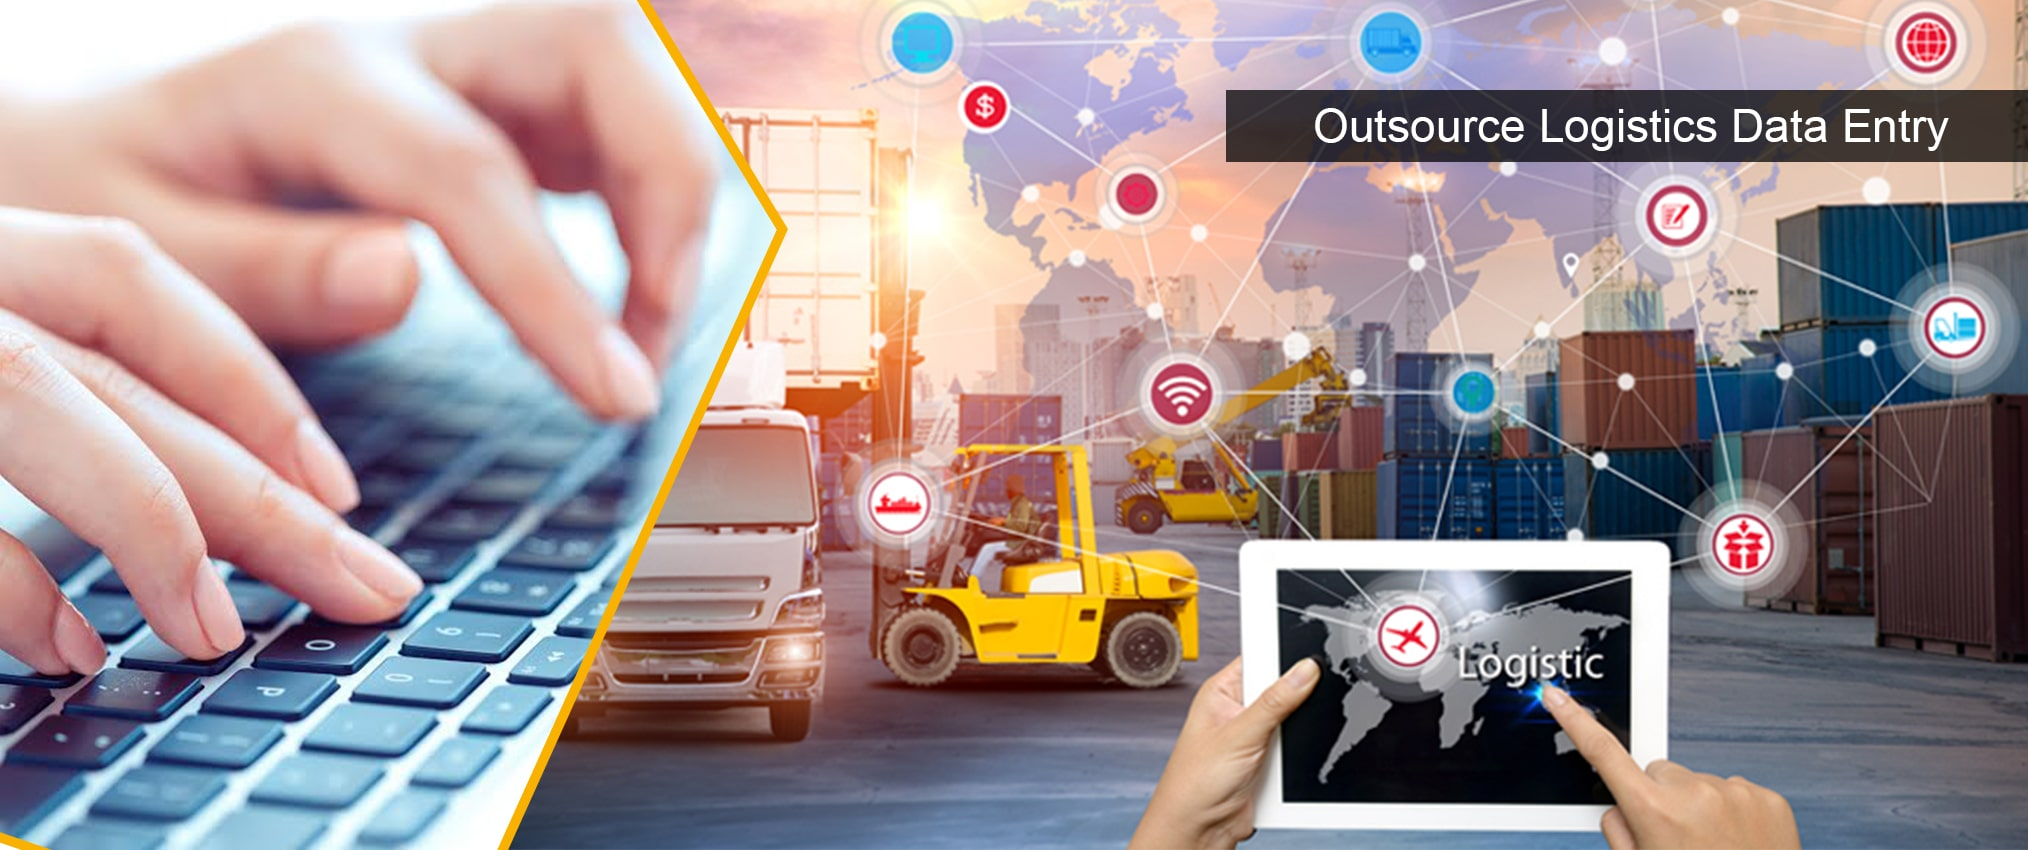 outsource logistic data entry to attain maximum business profit